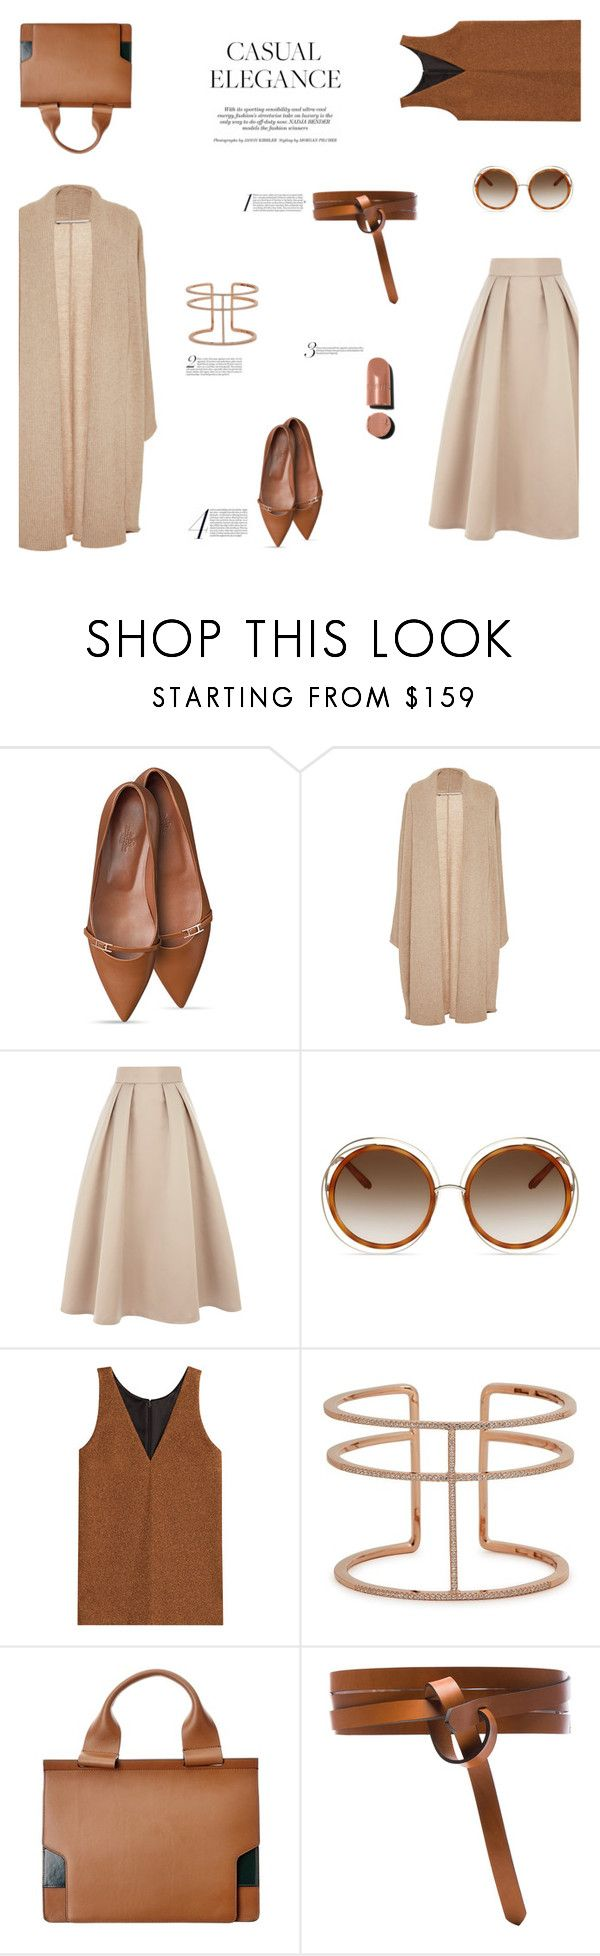 """""""CASUAL ELEGANCE"""" by canvas-moods ❤ liked on Polyvore featuring Rosetta Getty, Coast, Chloé, Isa Arfen, APM Monaco, Marni, Isabel Marant, Chanel, Elegant and Luxe"""